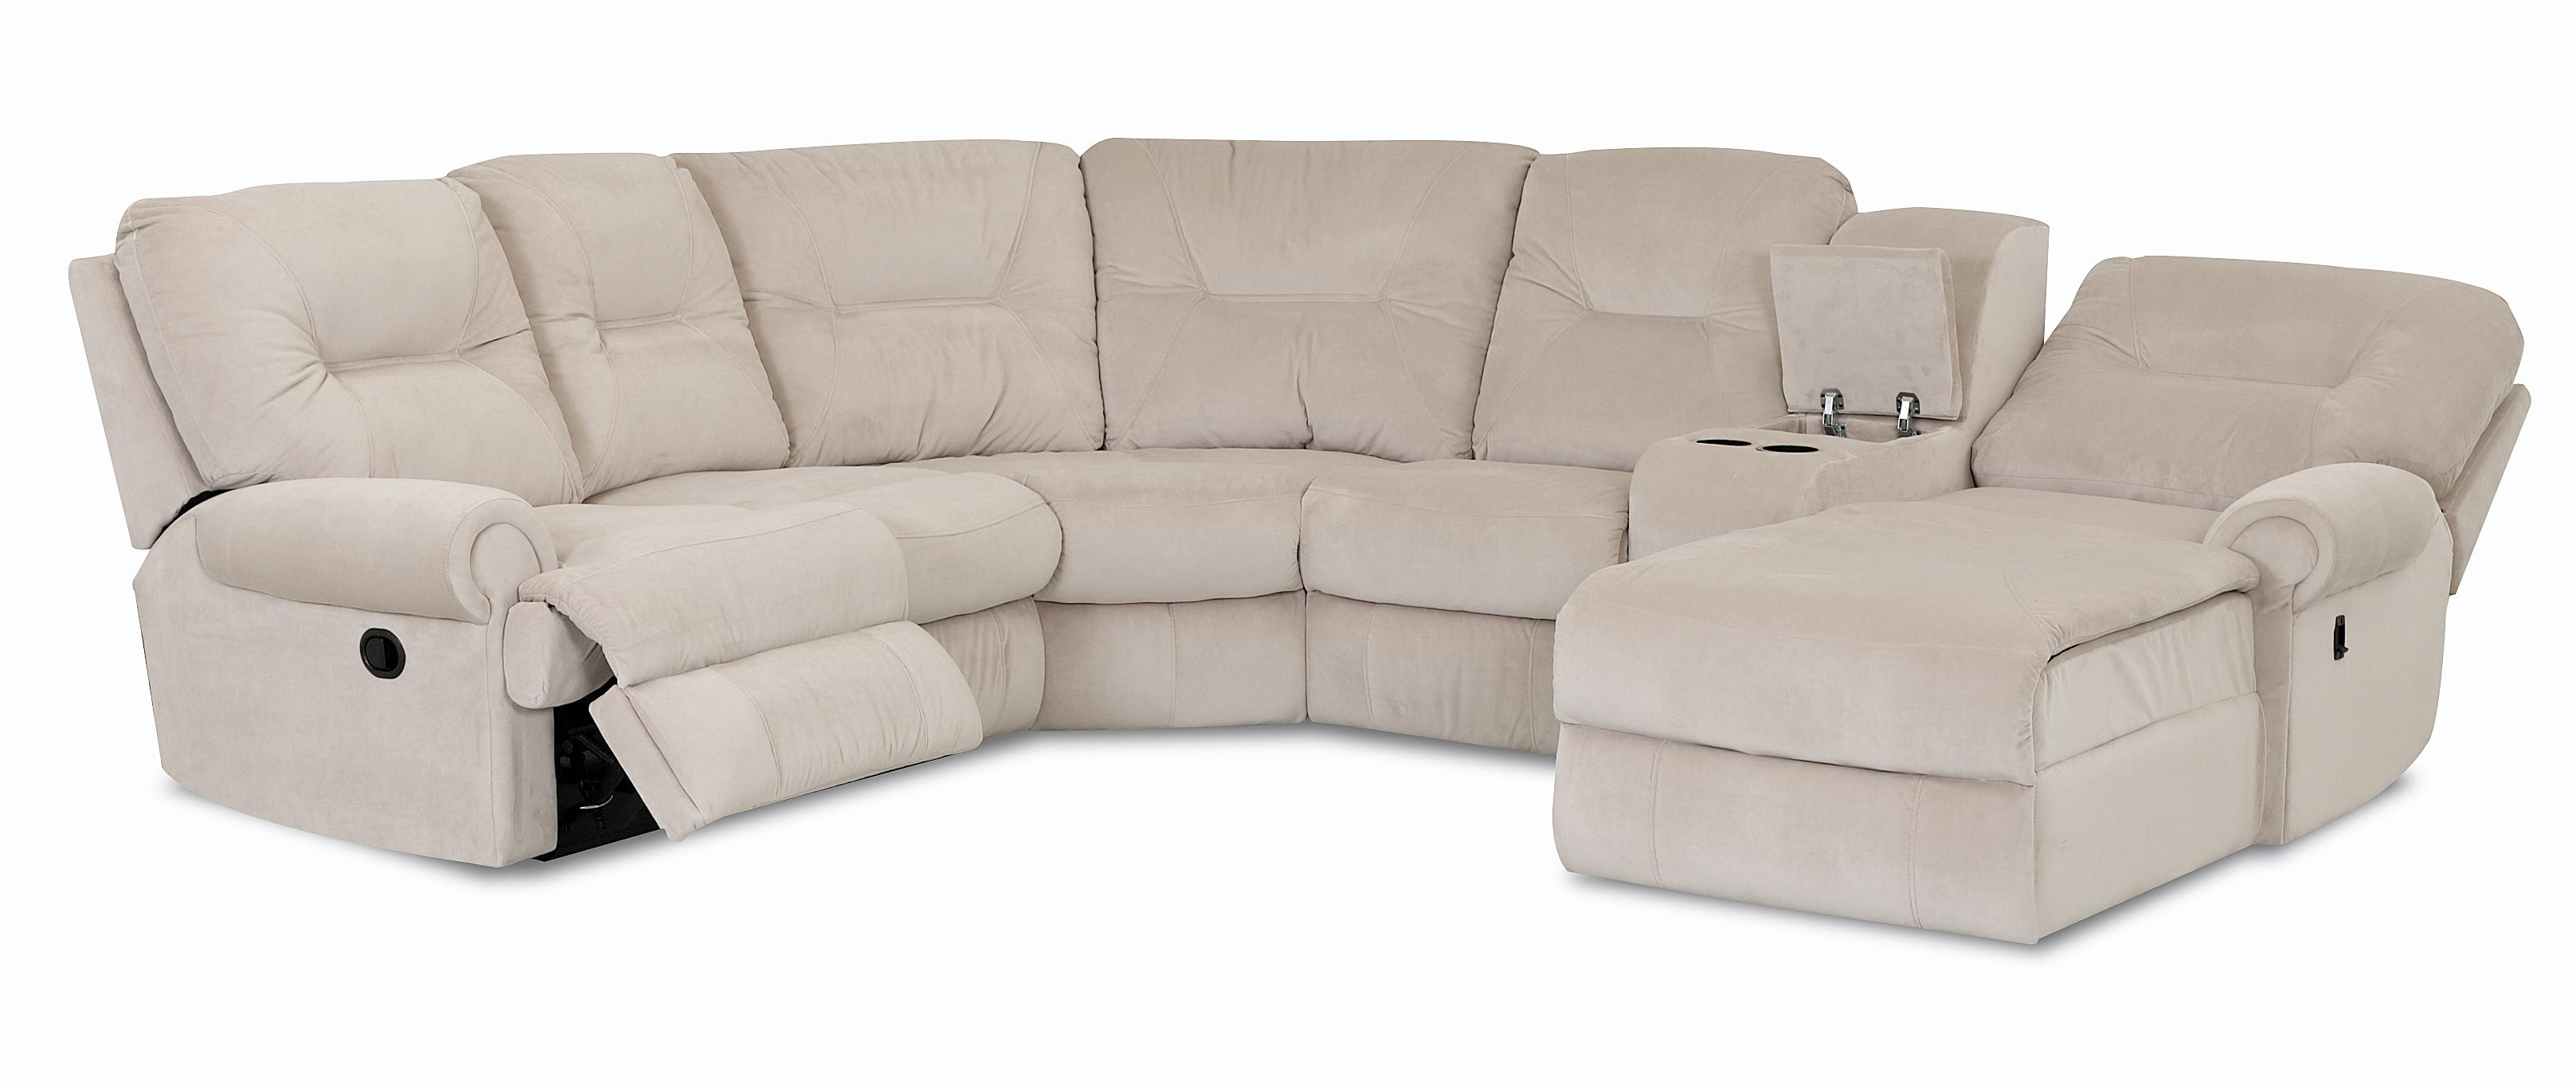 Traditional Reclining Sectional Sofa by Klaussner